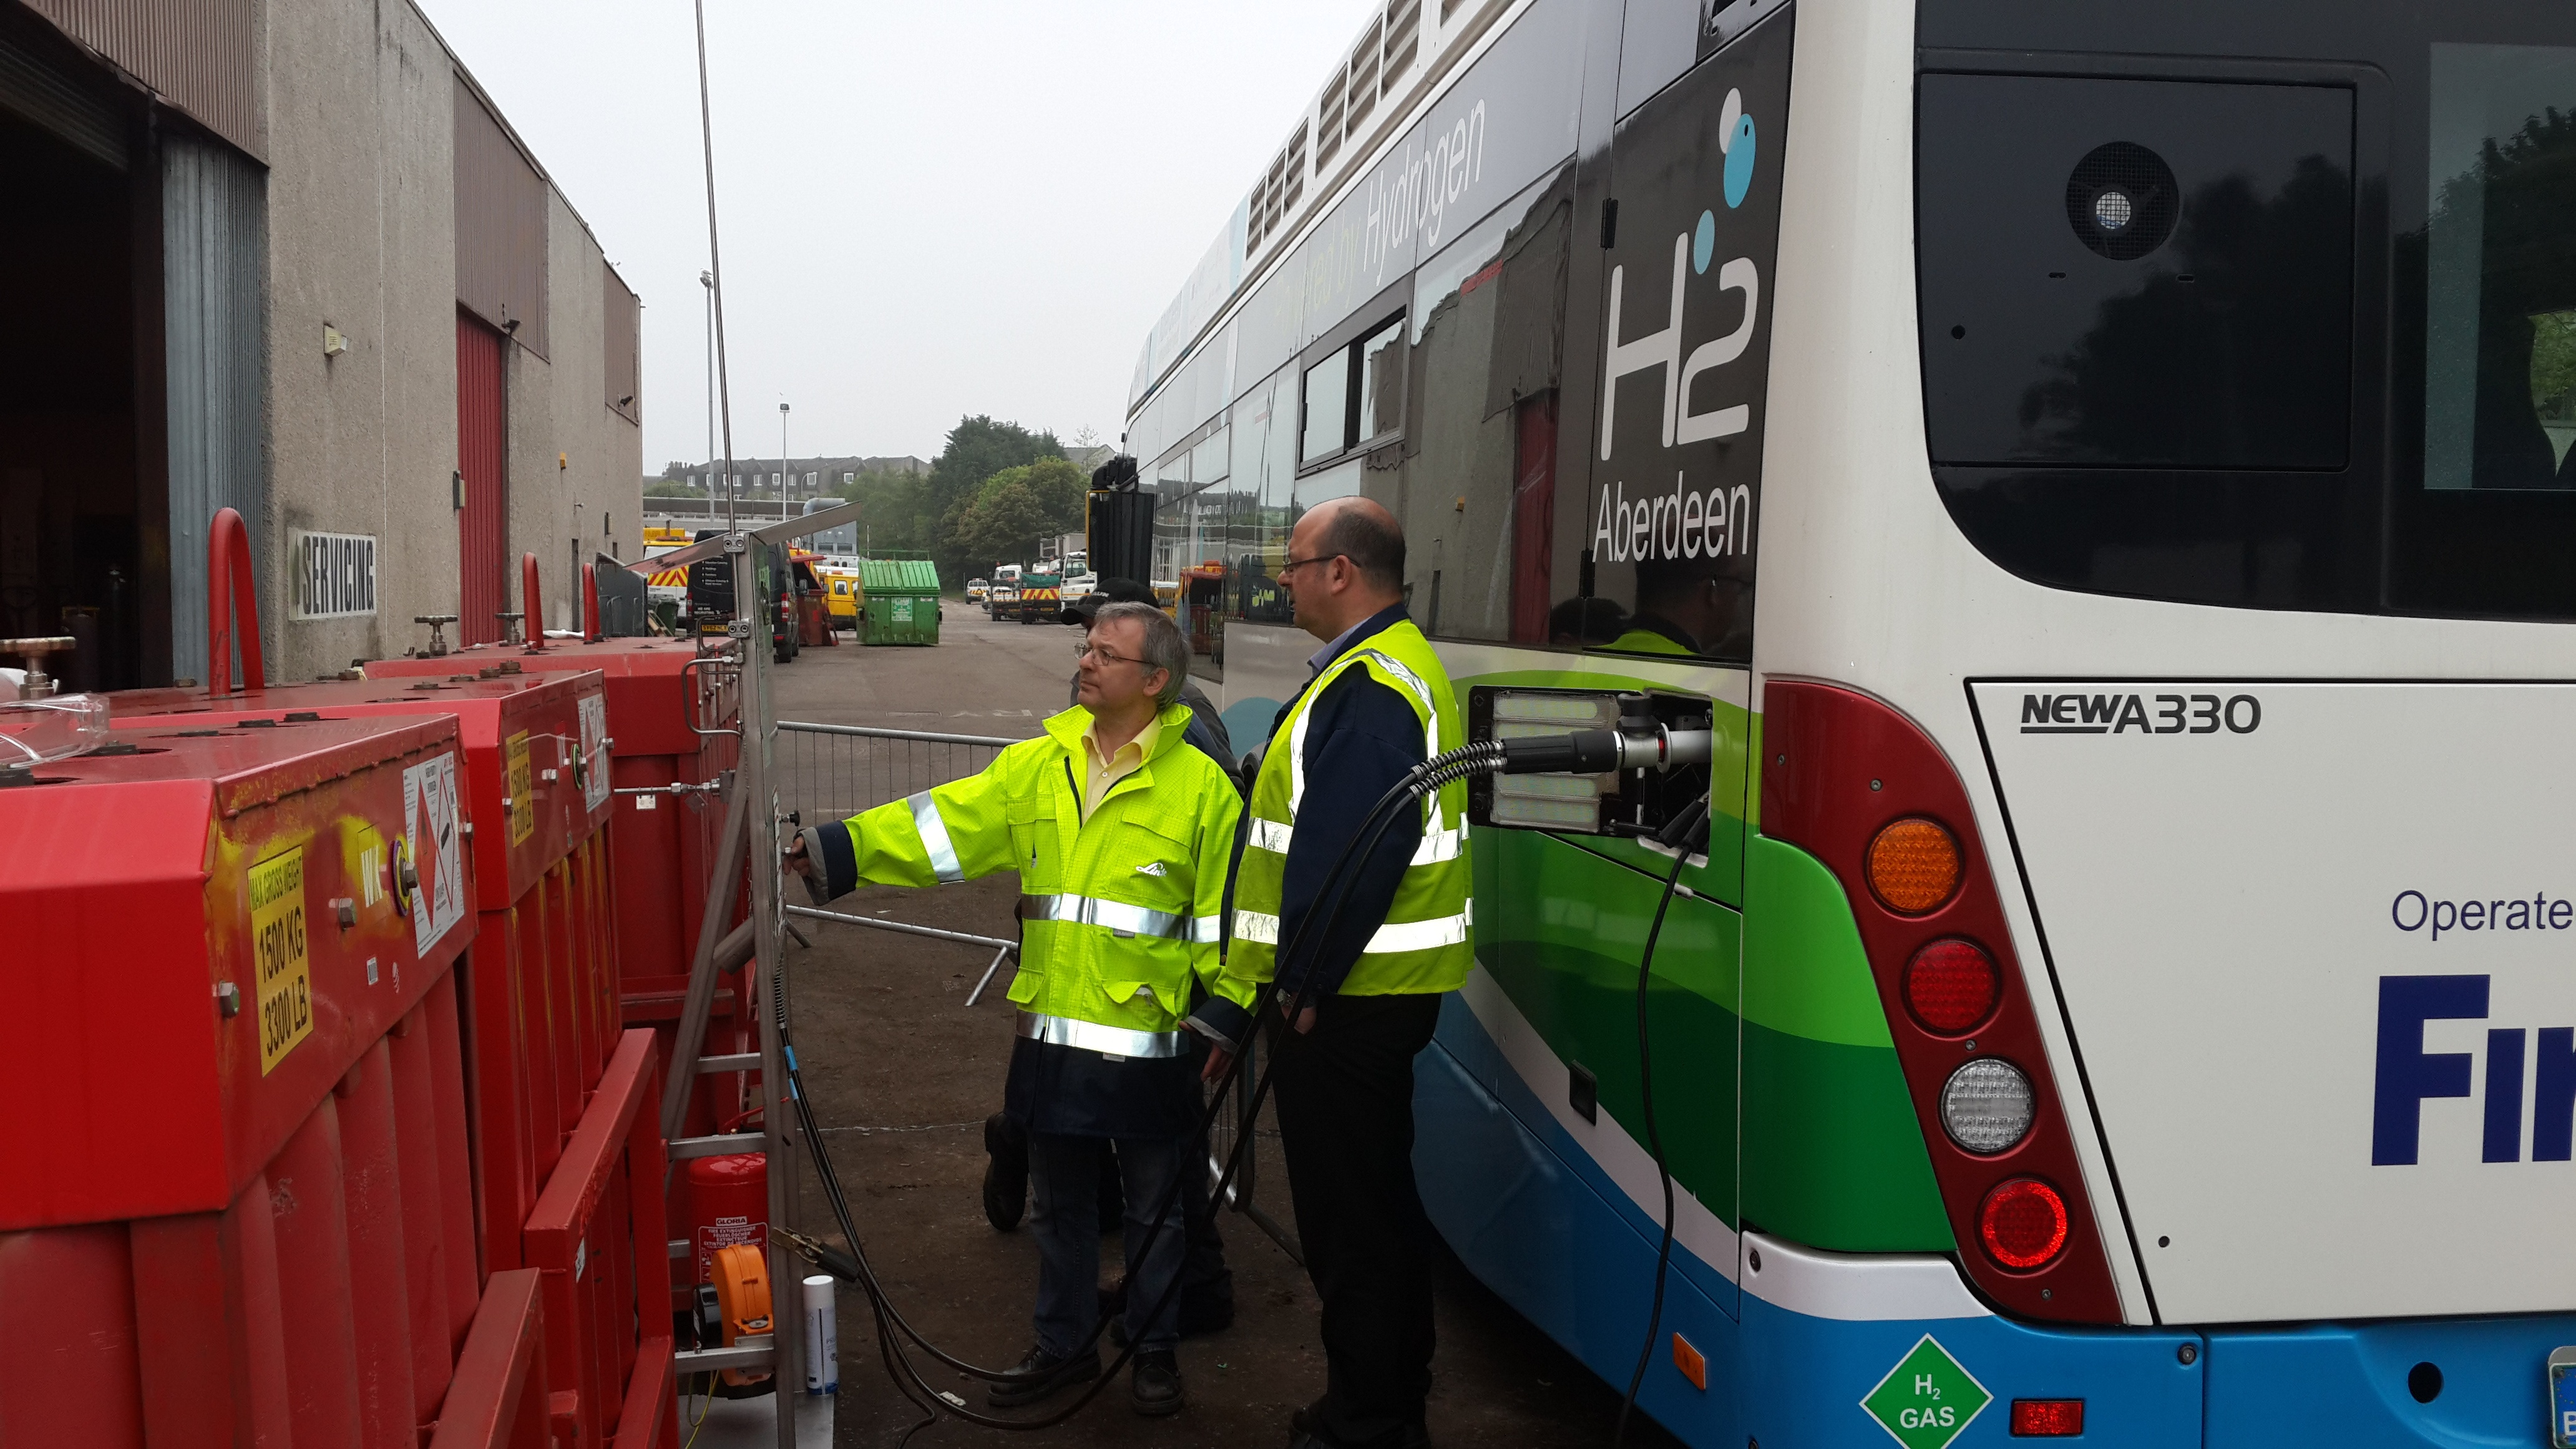 hydrogen-fuel-safety-aberdeen.jpg